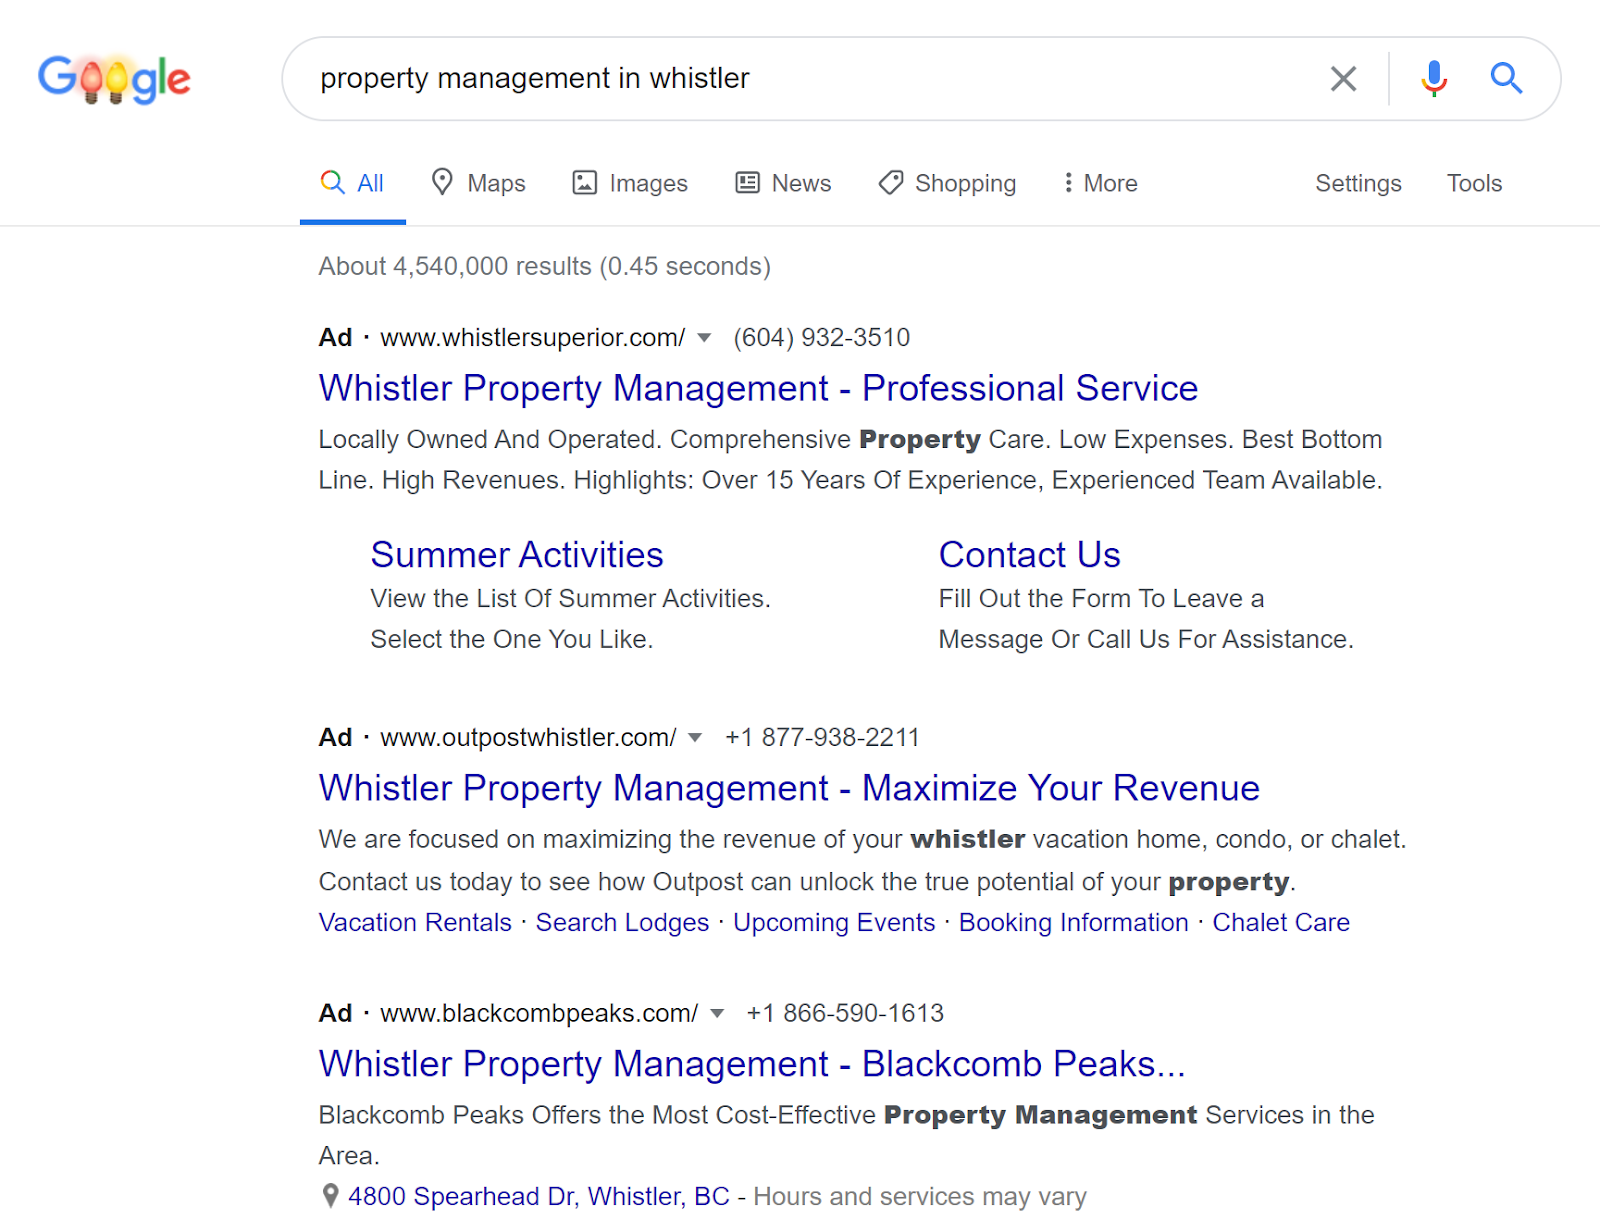 PPC Property Management in Whistler